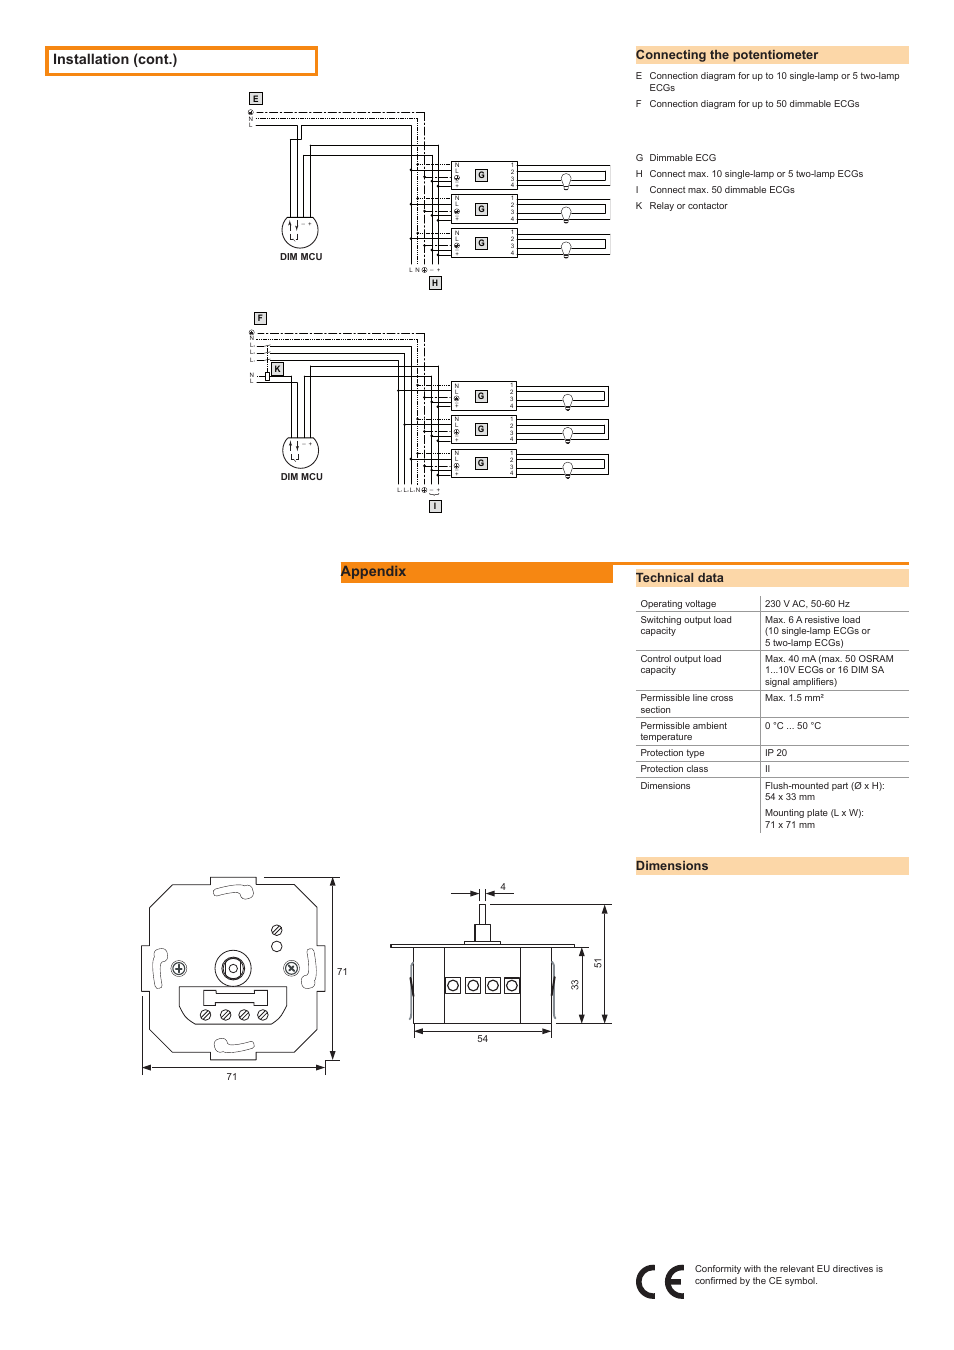 Osram Wiring Diagram Data Two Potentiometers In Series Installation Cont Appendix Connecting The Potentiometer Basic Light Diagrams